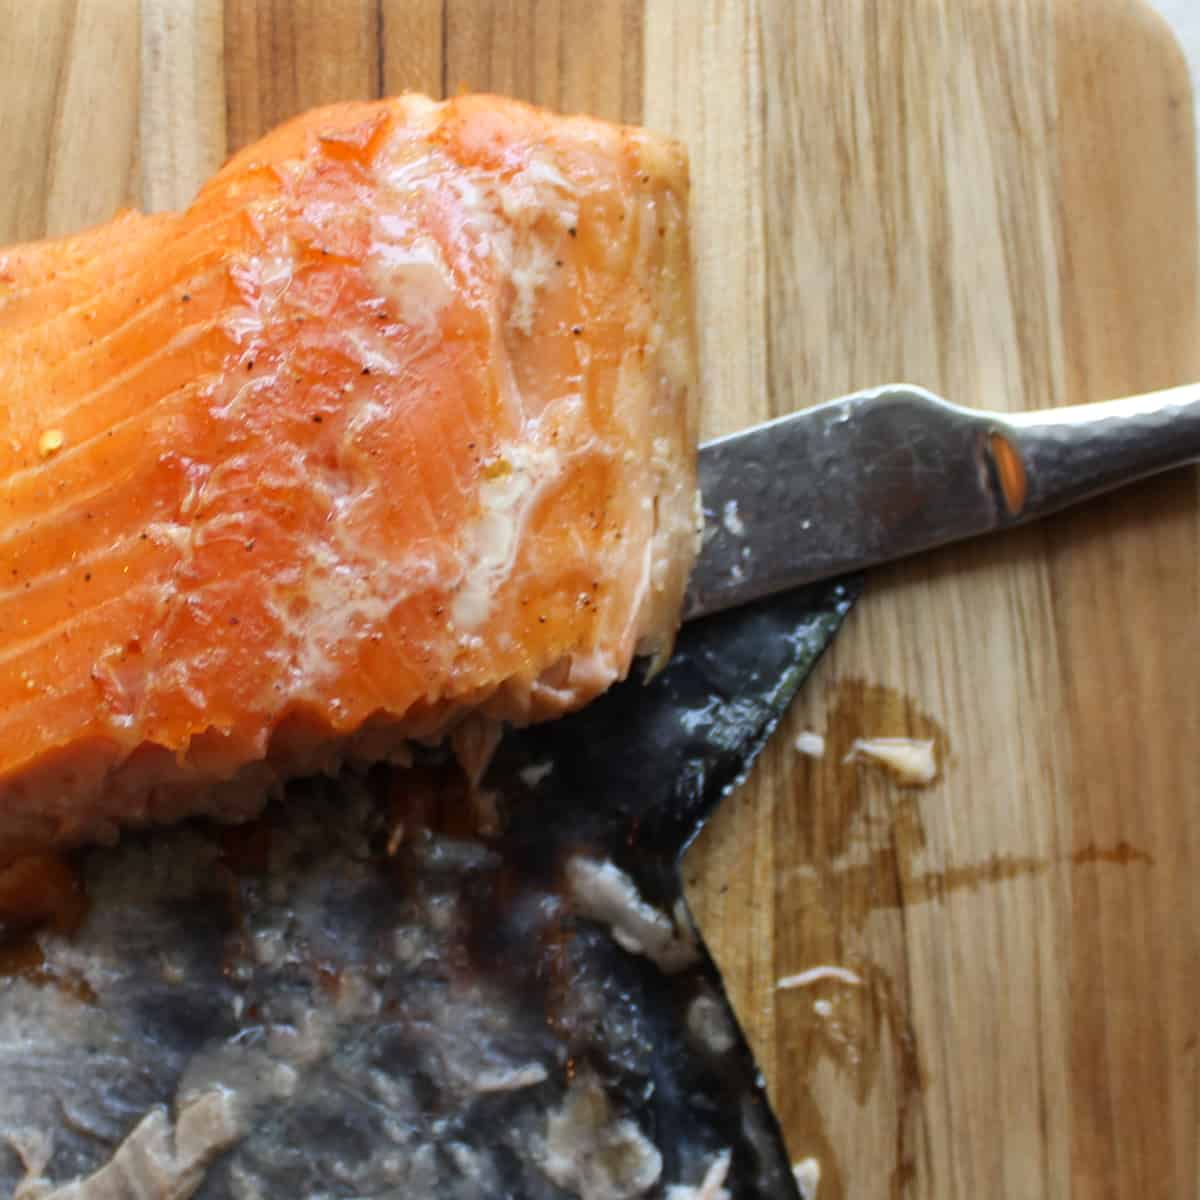 removing the skin from smoked salmon using a butter knife